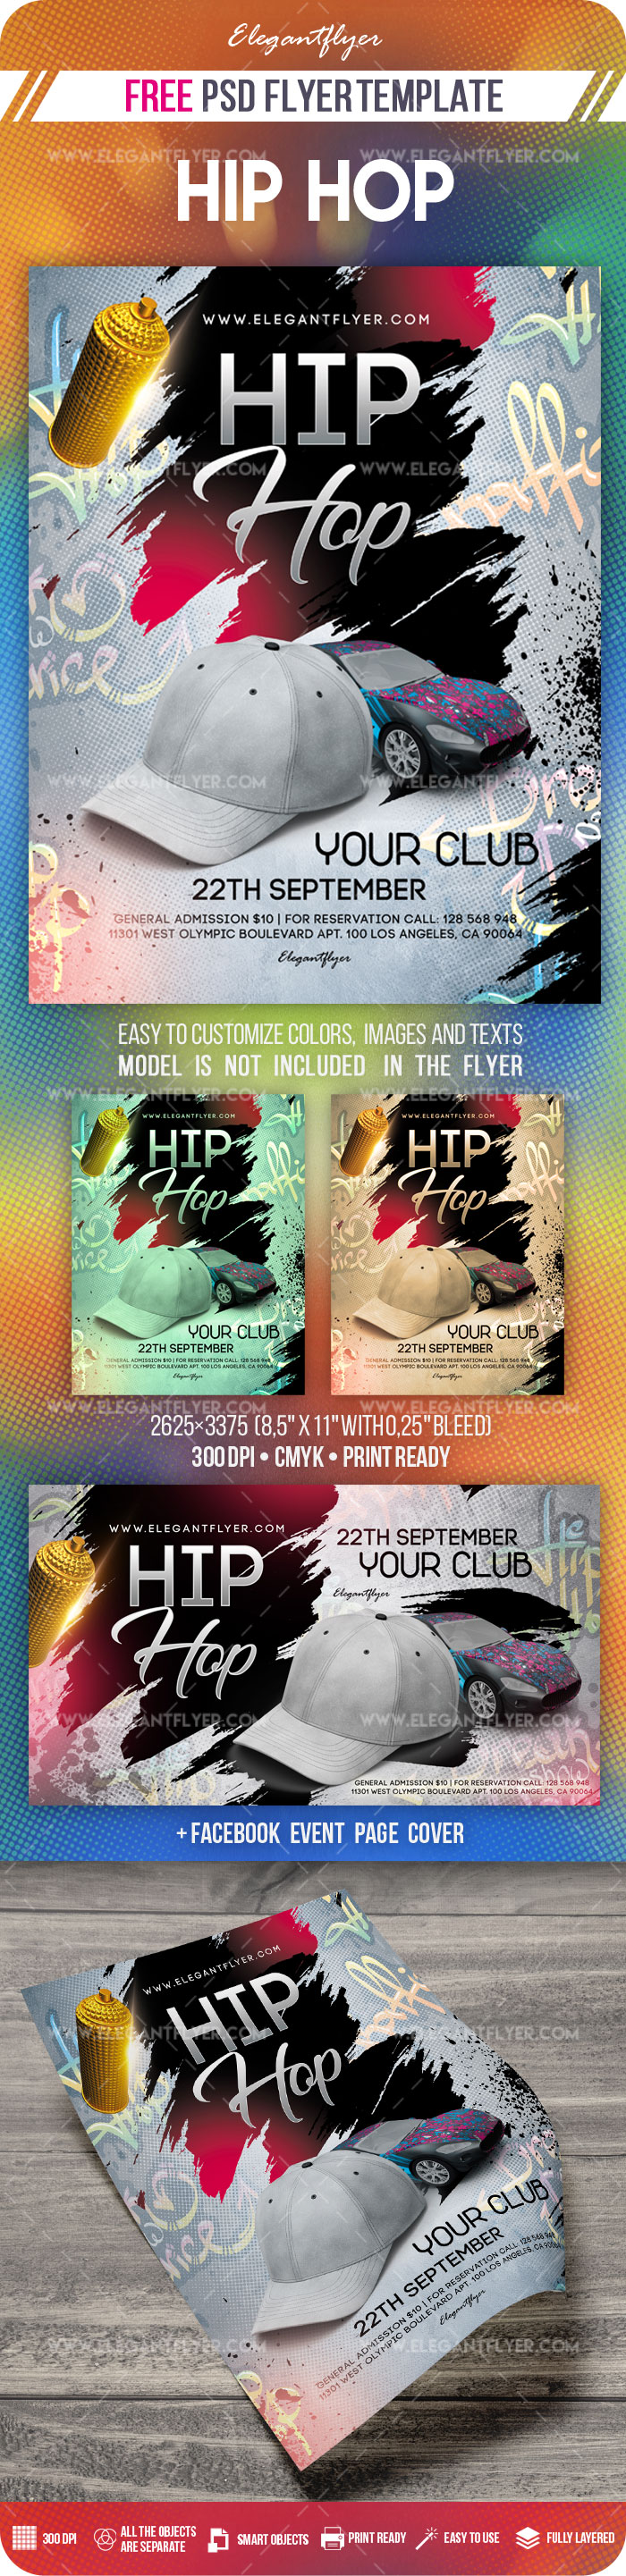 Hip Hop – Free Flyer PSD Template